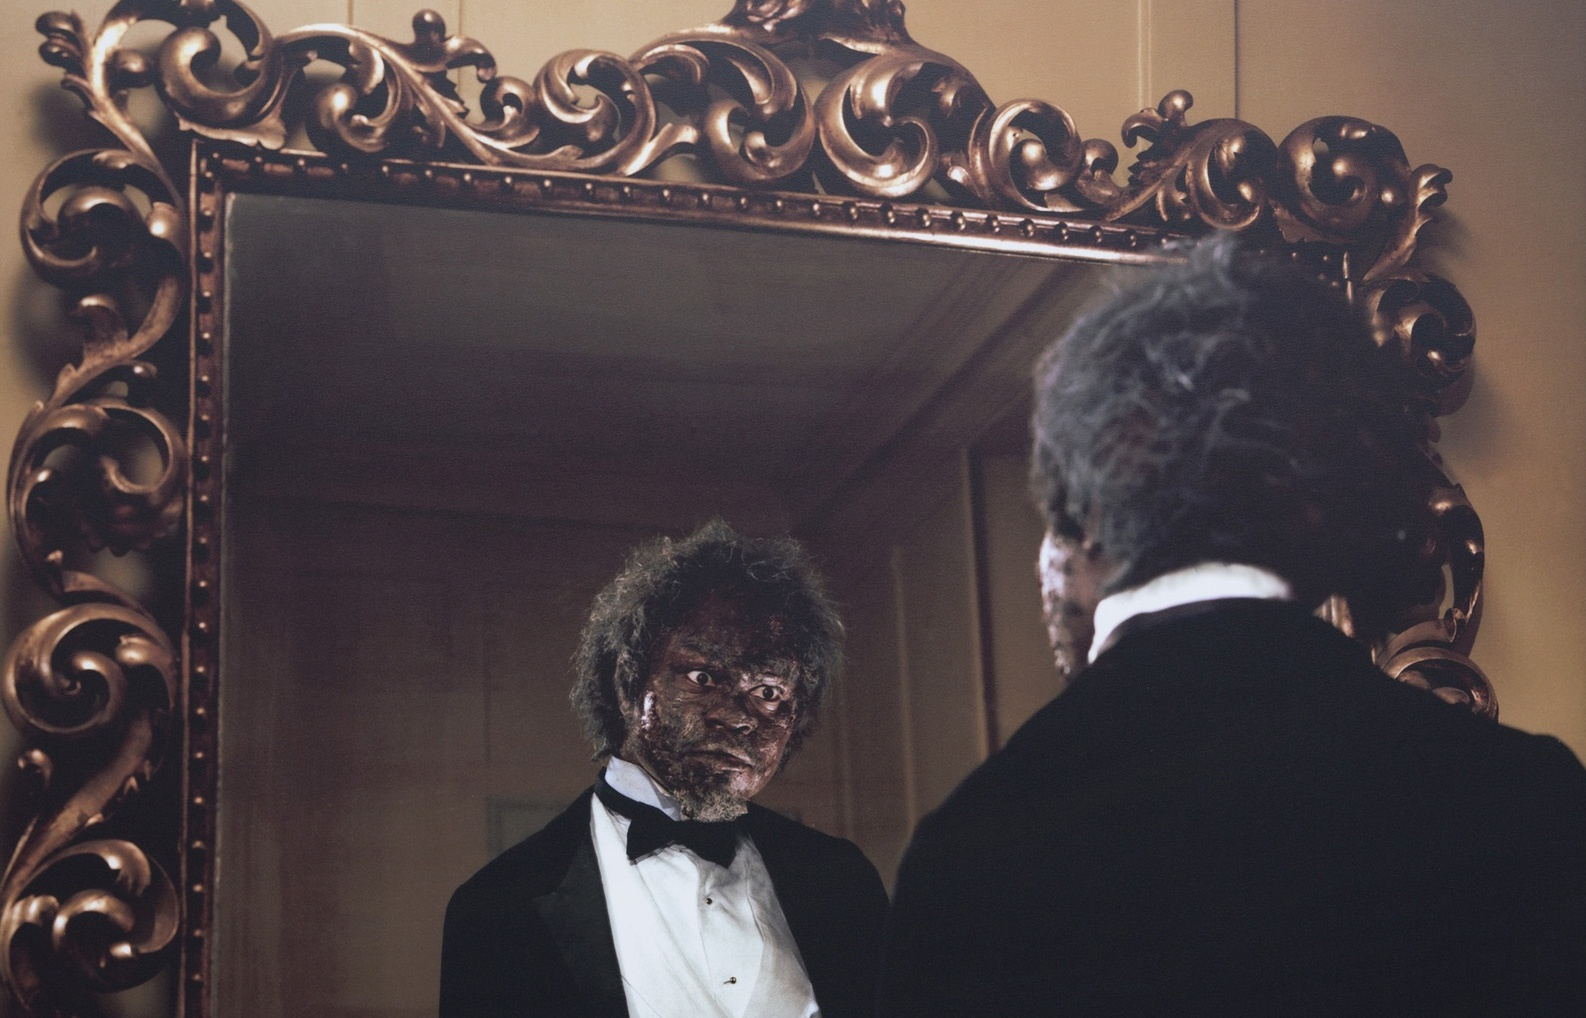 A detail of a photograph of a Black man with his back to the camera looking at his reflection in a large, decoratively framed mirror. He's wearing a black suit jacket, bowtie with a white shirt and his skin looks damaged or weathered.